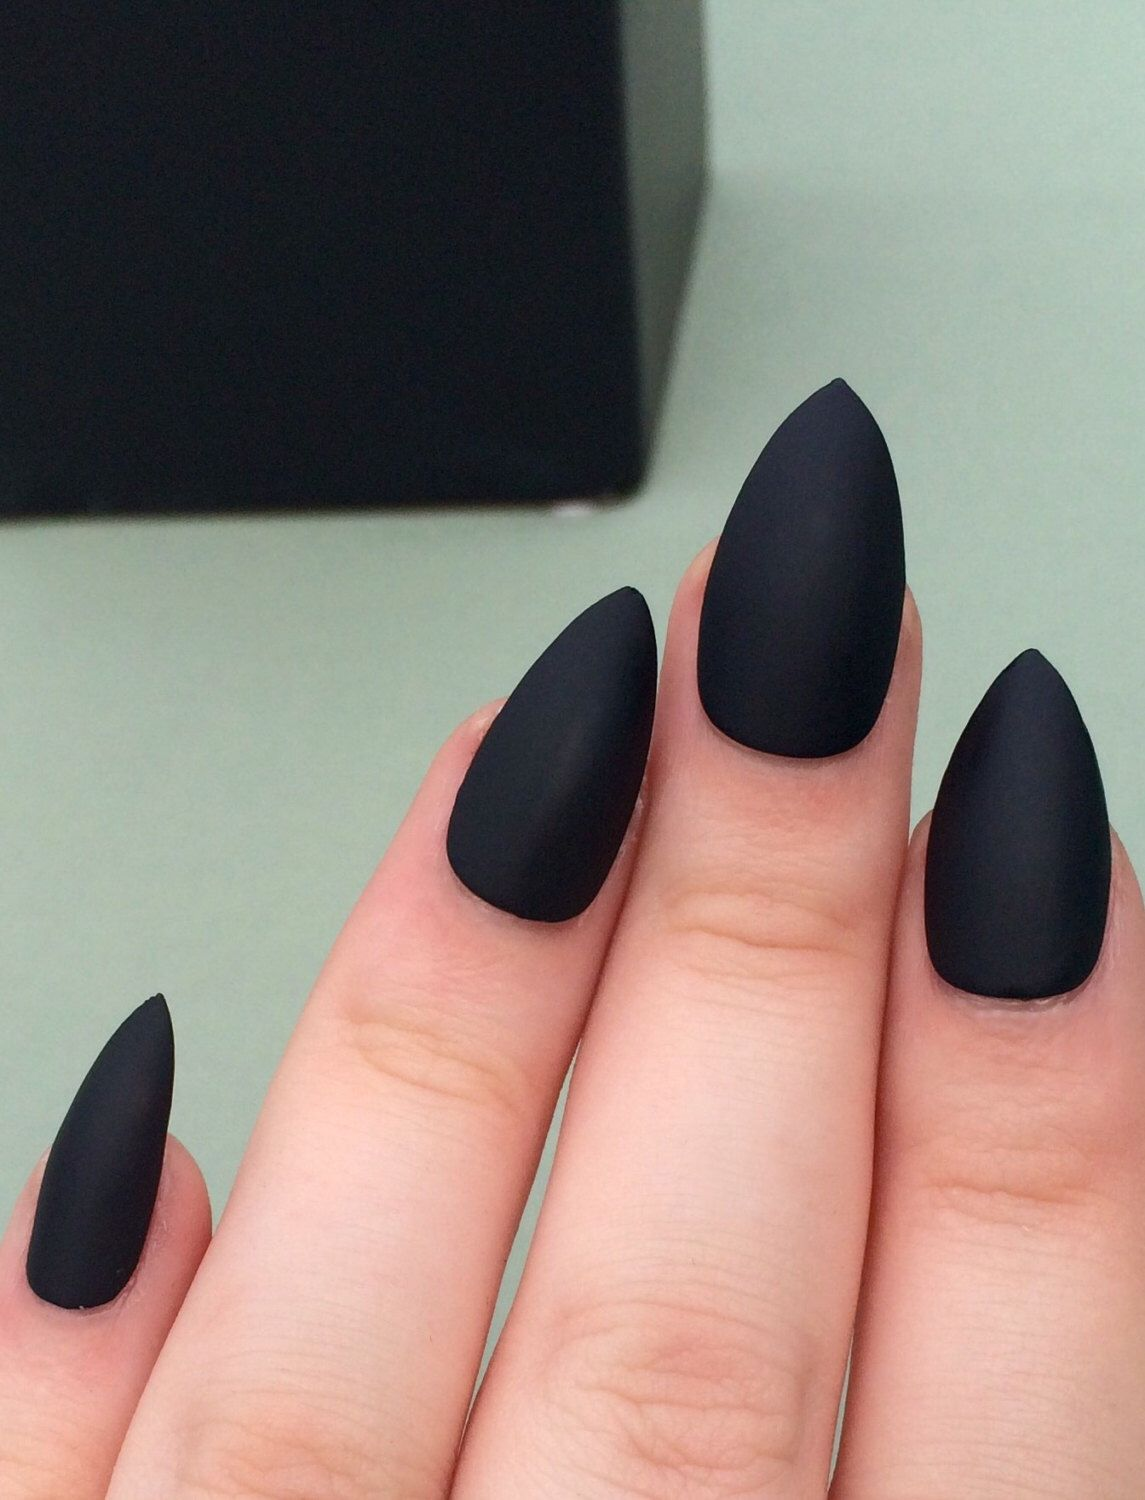 Matte Black Nails Stiletto Nails Coffin Nails Fake Nails Black Stiletto Nails Matte Black Nails Black Nails